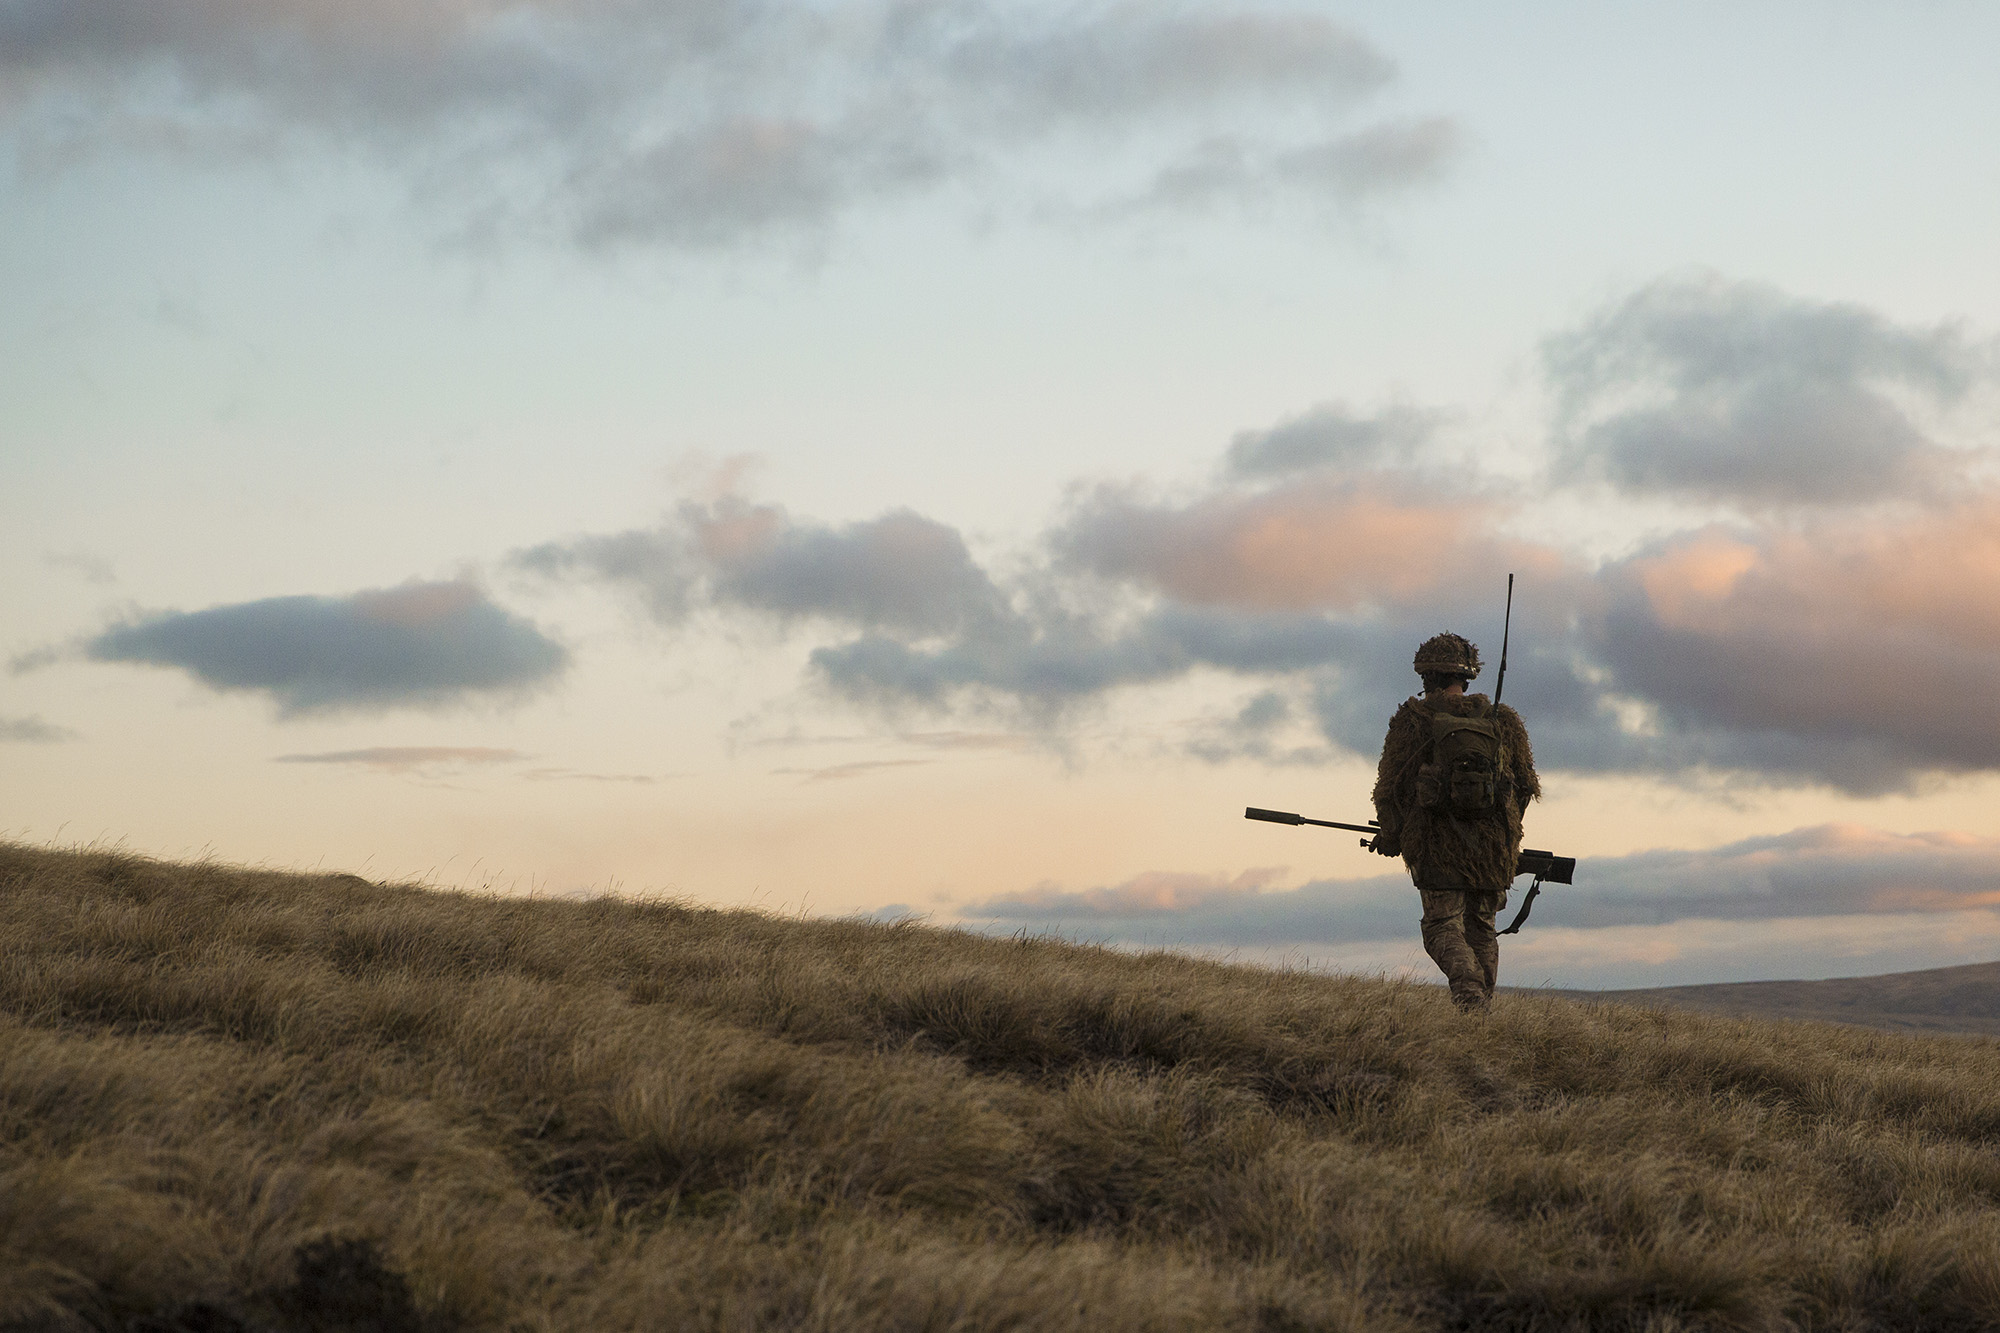 Welsh Guards pictured during a 'live fire' exercise at Onion Range in the Falkland Islands. Crown Copyright.